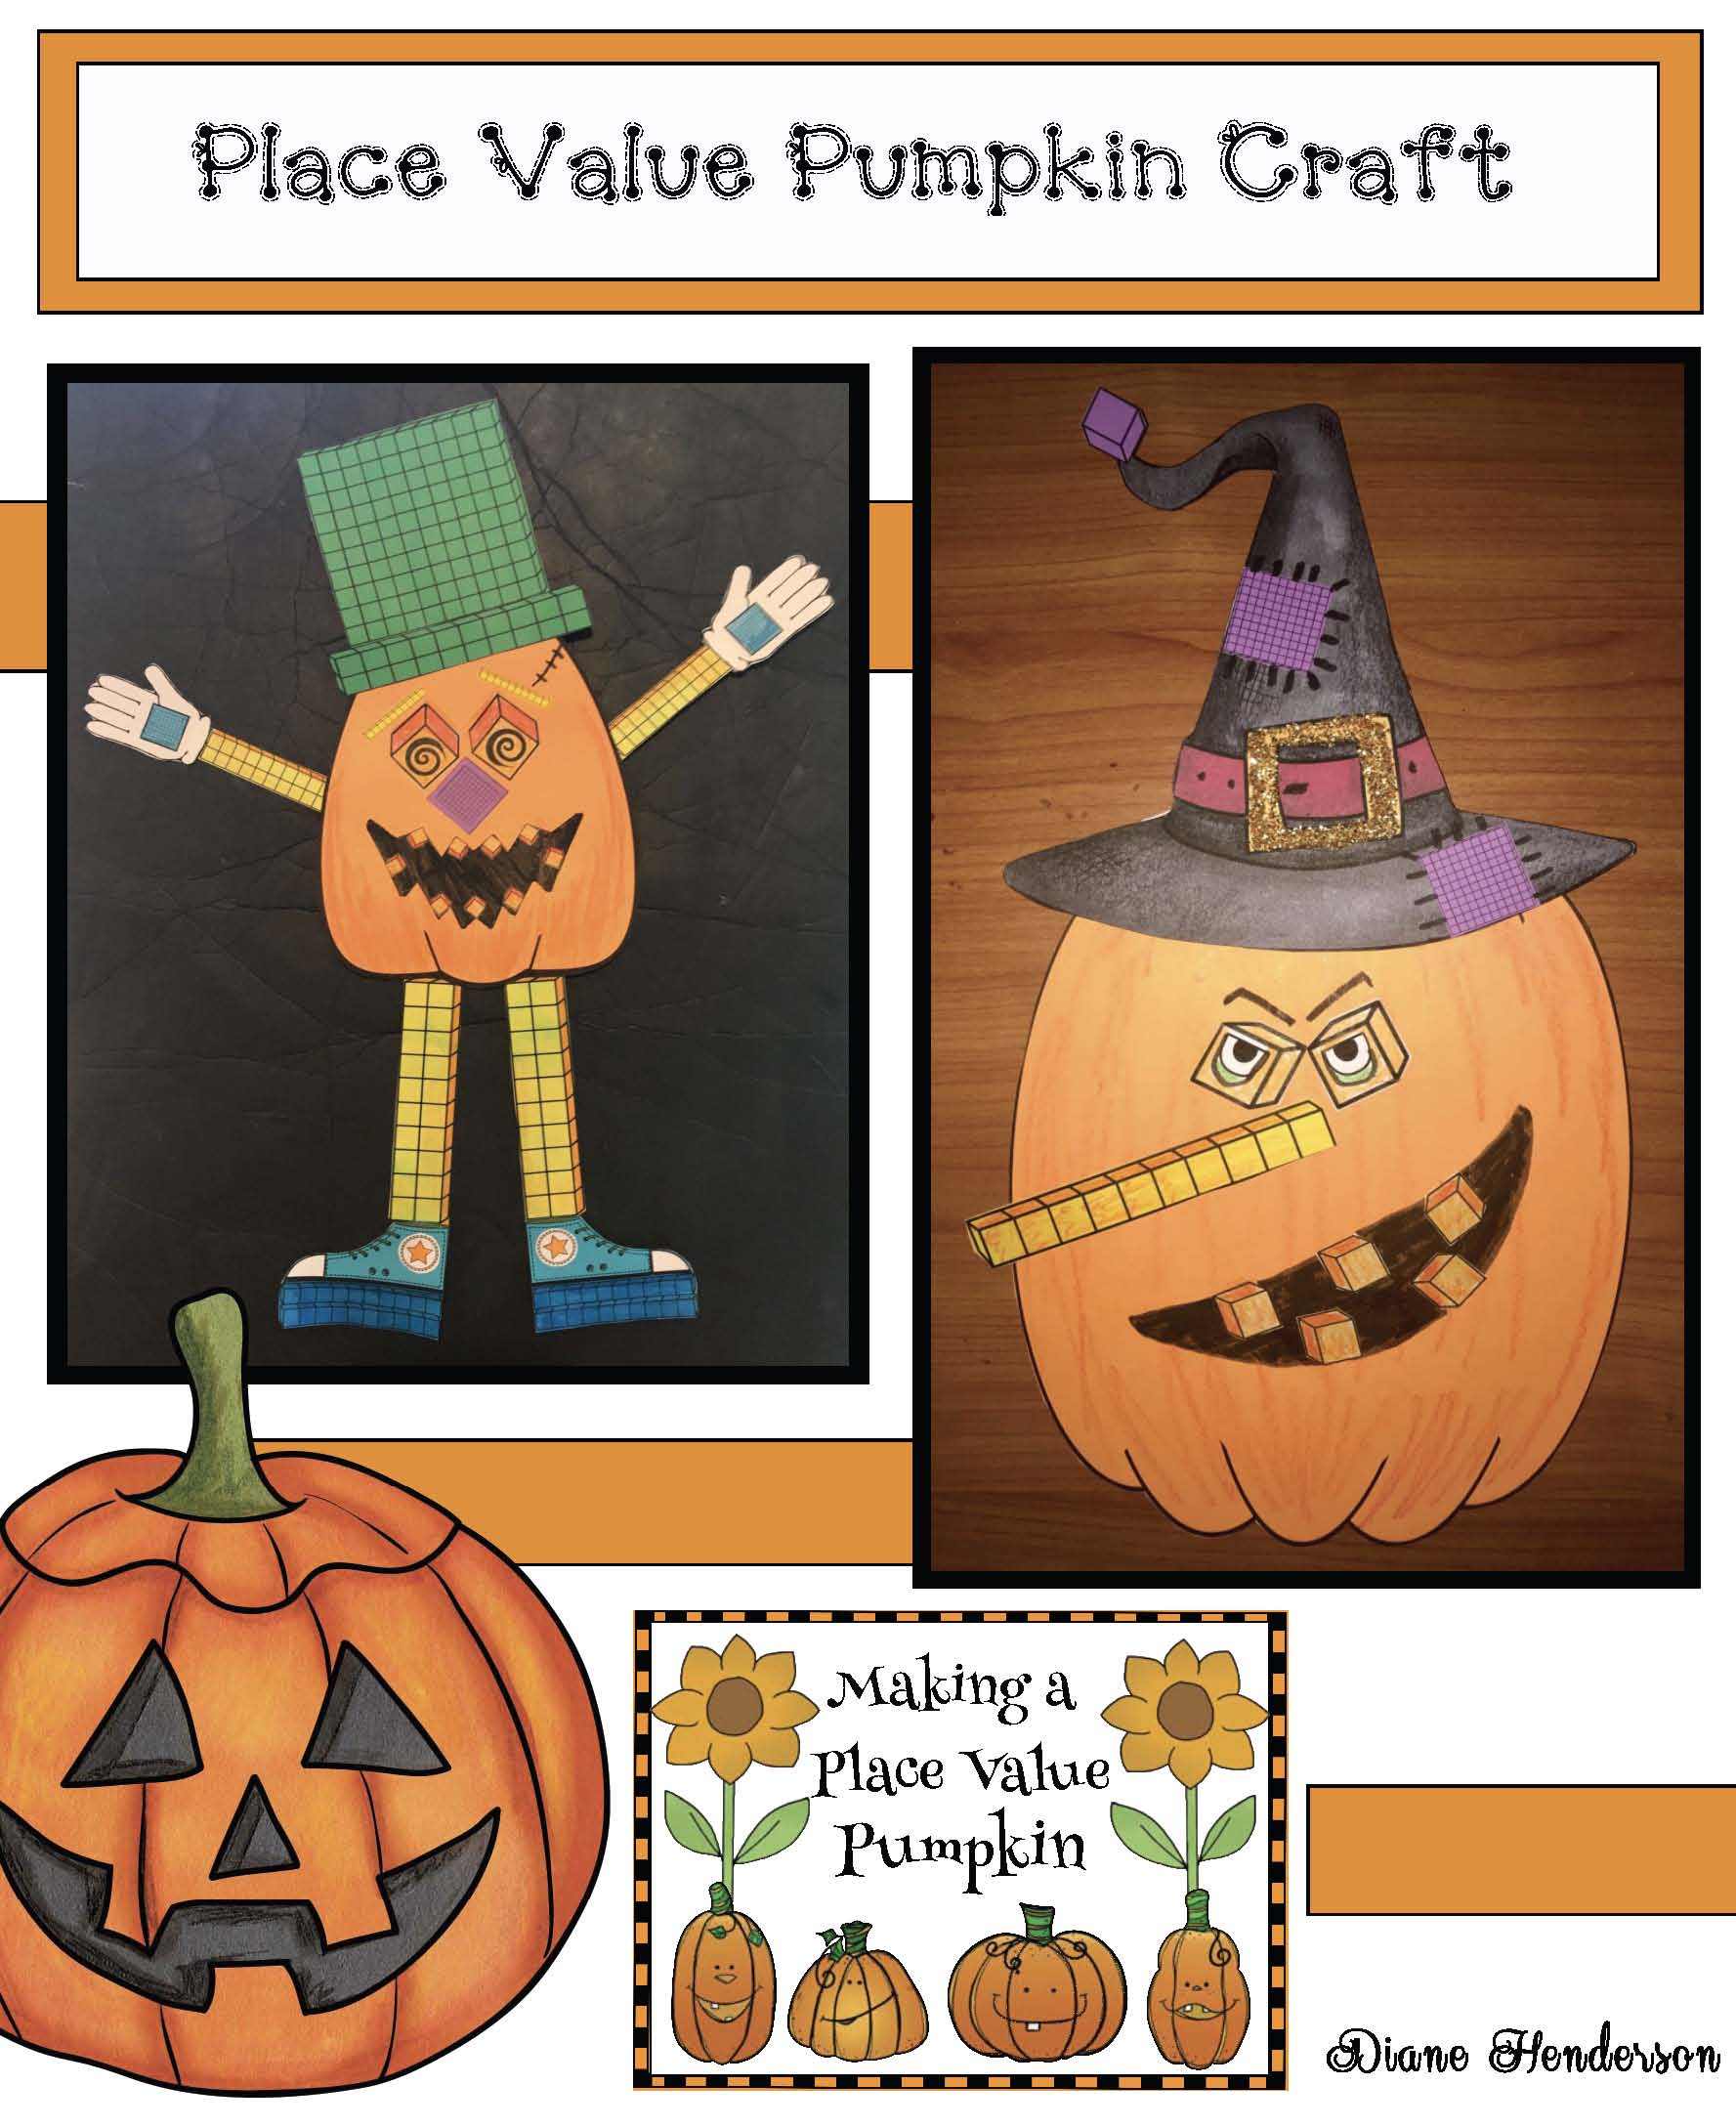 pumpkin crafts, pumpkin activities, place value activities, place value crafts, october bulletin boards, math bulletin boards, halloween party day crafts